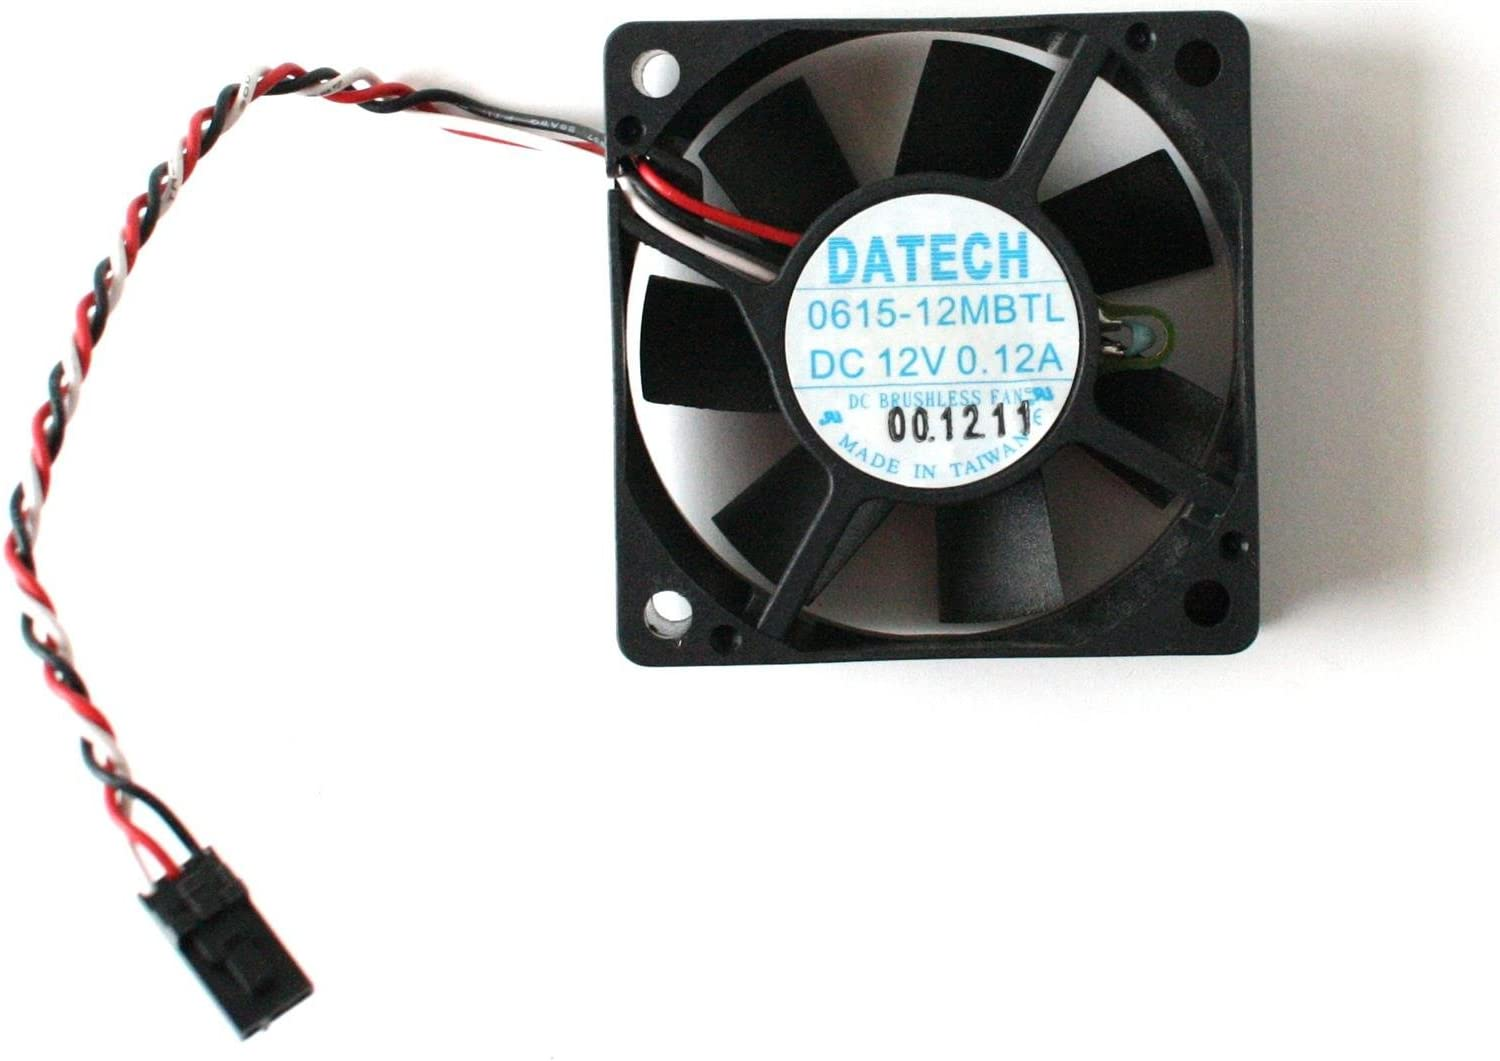 60x15mm DATECH 0615-12MBTL DC 12V 0.12A DC BRUSHLESS FAN 3-WIRE